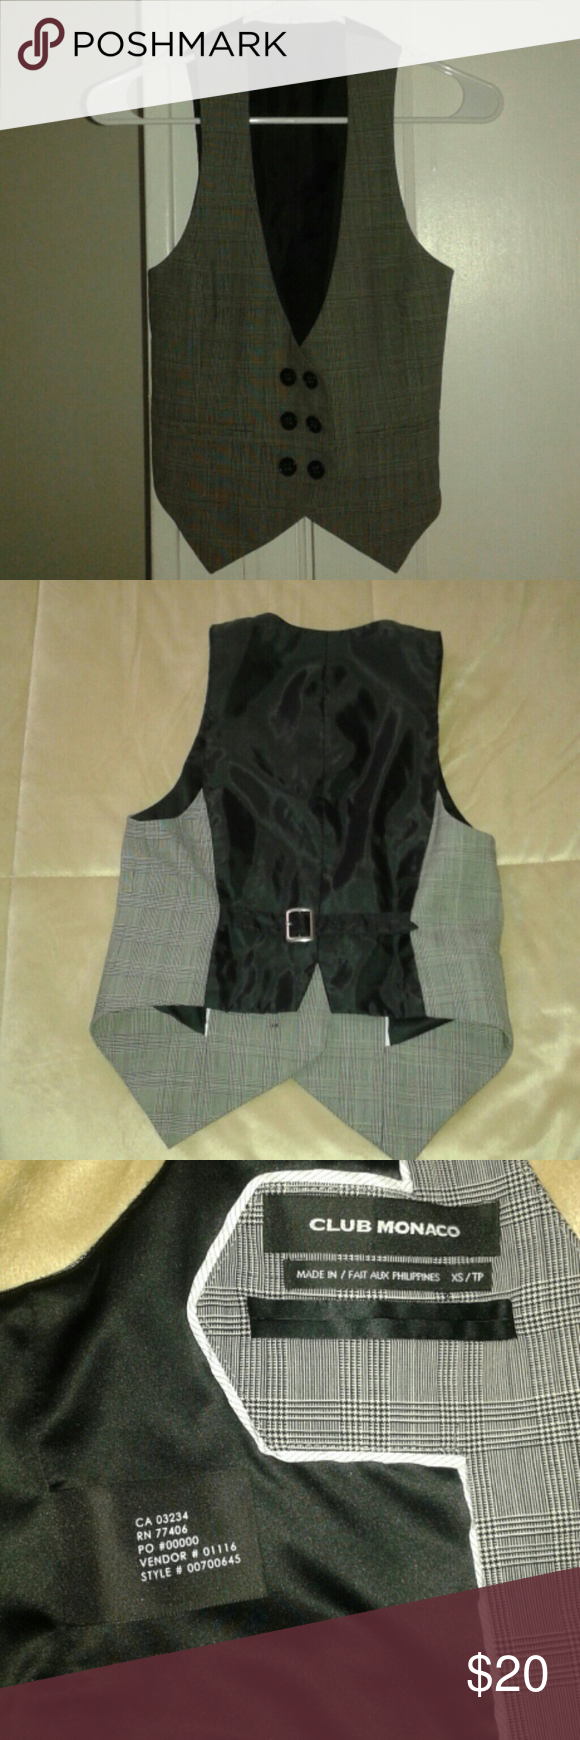 Club Monaco tuxedo vest This listing is for the pictured Club Monaco size extra small tuxedo vest. Shell: 95% wool, 5% spandex. Lining: 100% polyester. Gently used condition. Club Monaco Jackets & Coats Vests